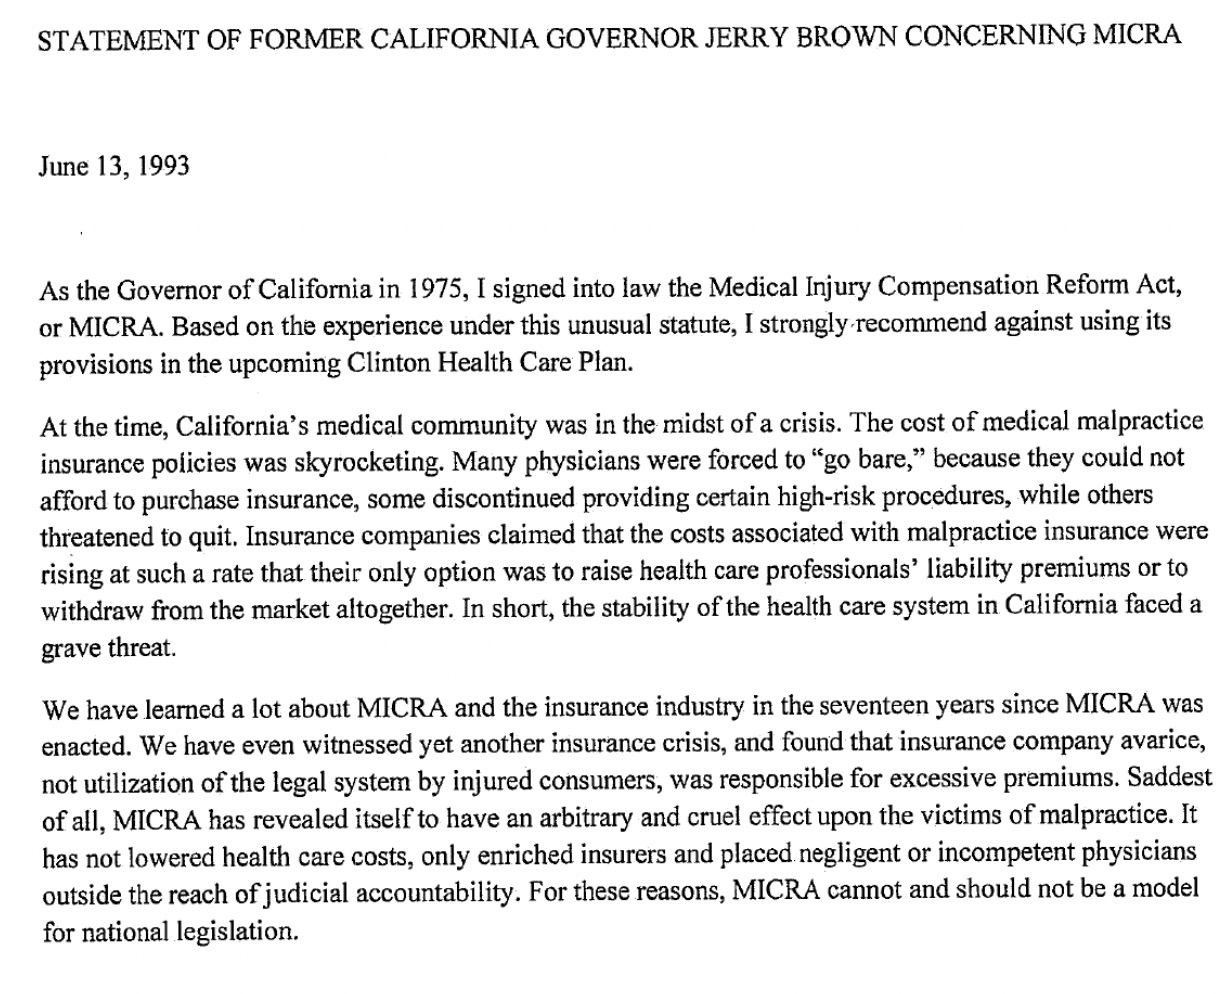 GOVERNOR JERRY BROWN'S 1993 STATEMENT ON MICRA